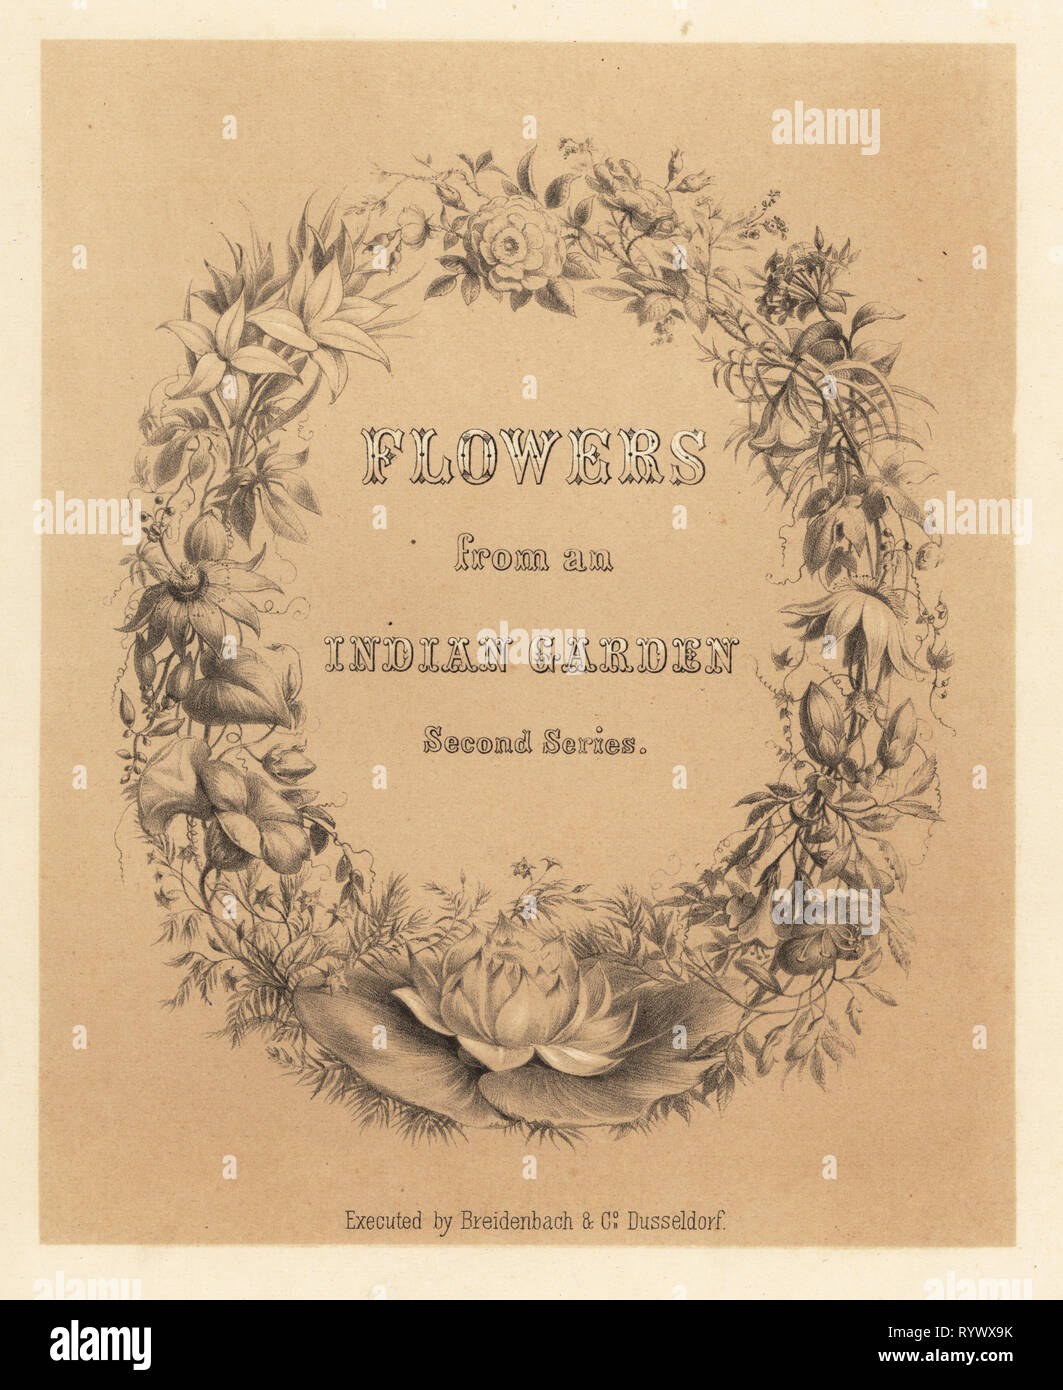 Calligraphic title page with wreath of flowers. Tinted lithograph from Emily Eden's Flowers from an Indian Garden: Second Series: Hope, Breidenbach & Co, Dusseldorf, 1860s. Eden was an English female aristocratic writer, novelist and traveler who accompanied her brother George in India from 1836 to 1842. - Stock Image